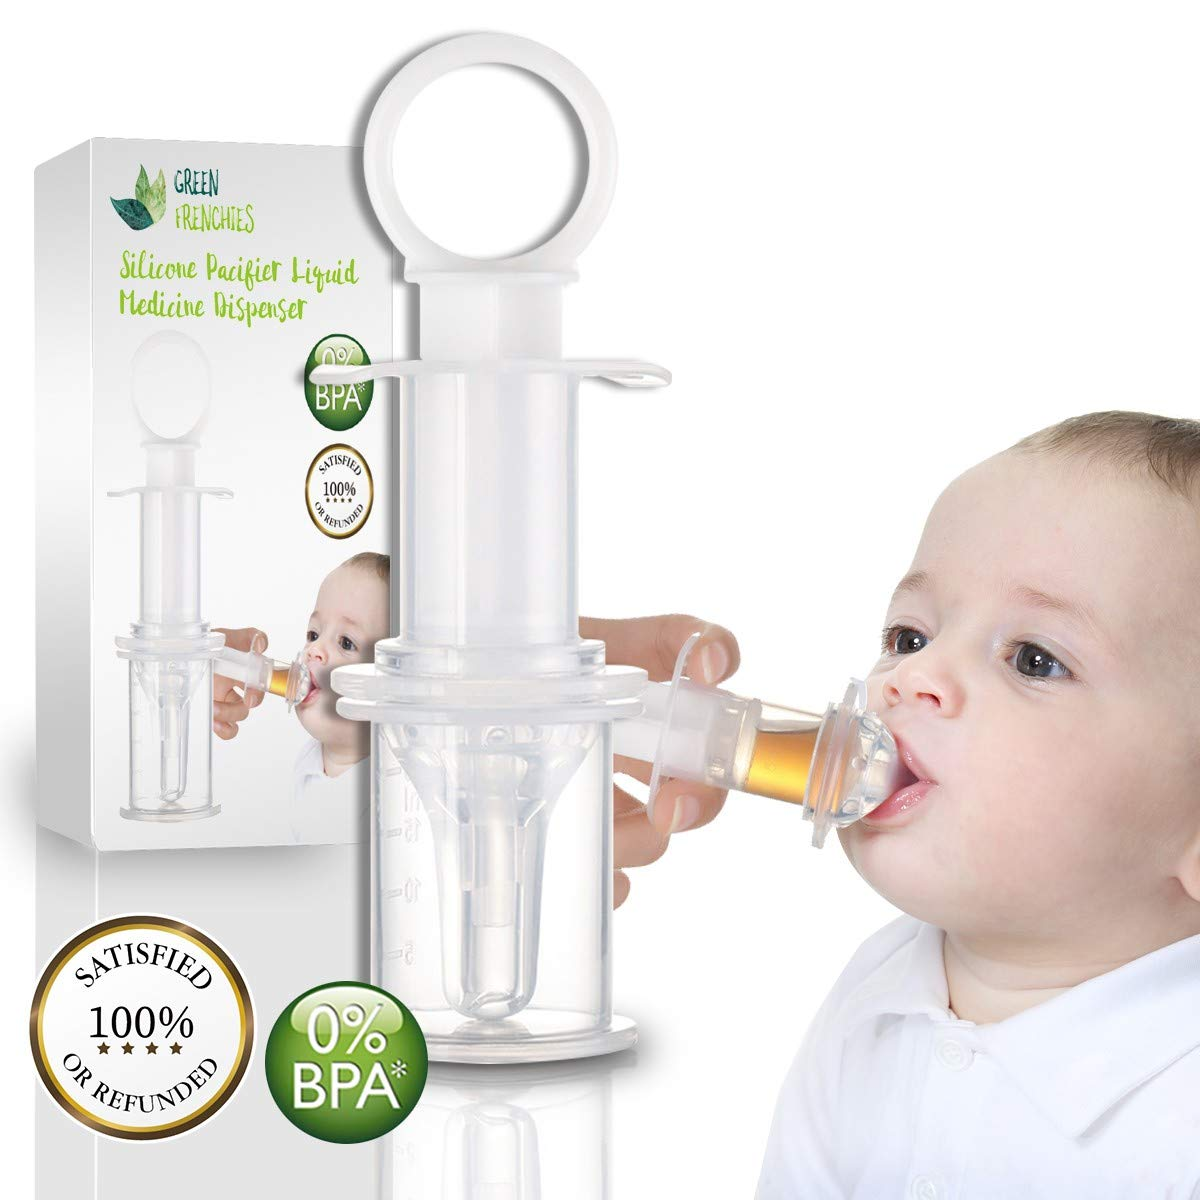 G.F. Pacifier Medicine Dispenser, Pacifier Liquid Medicine Dispenser, Toddler Oral Medicine Syringe with Box, Feeding medicator by Green Frenchies